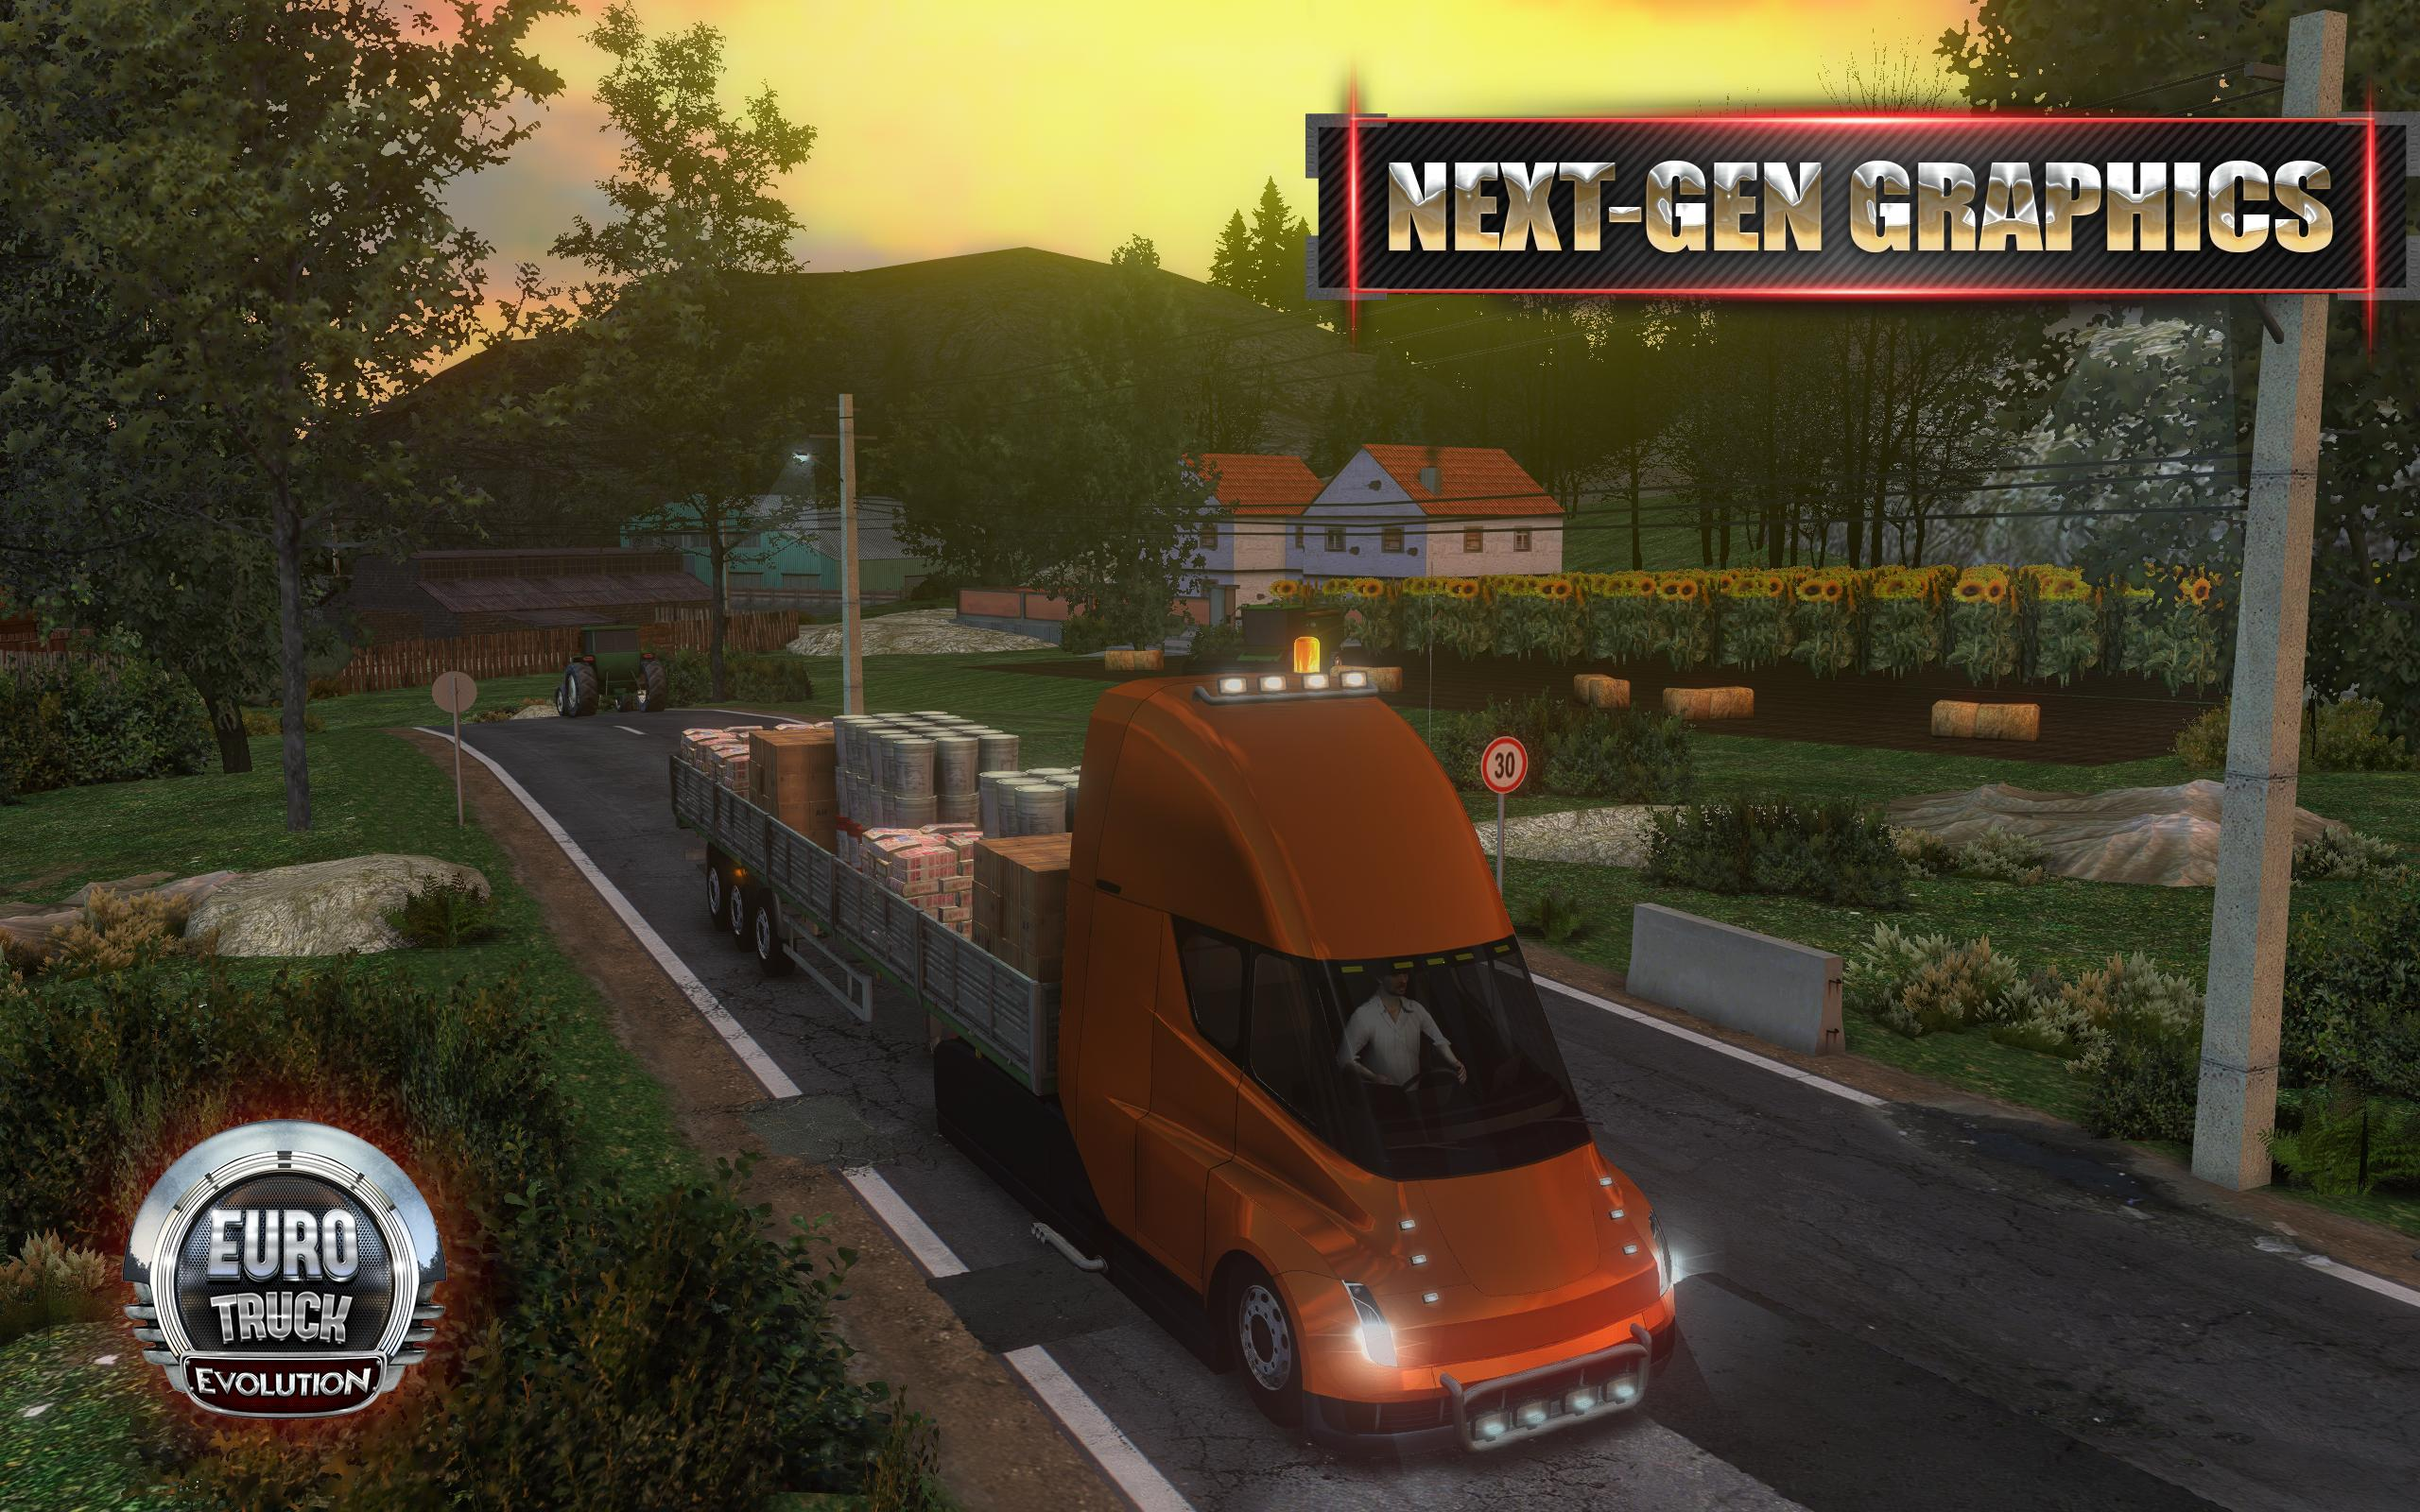 Euro Truck Evolution (Simulator) 3.1 Screenshot 13